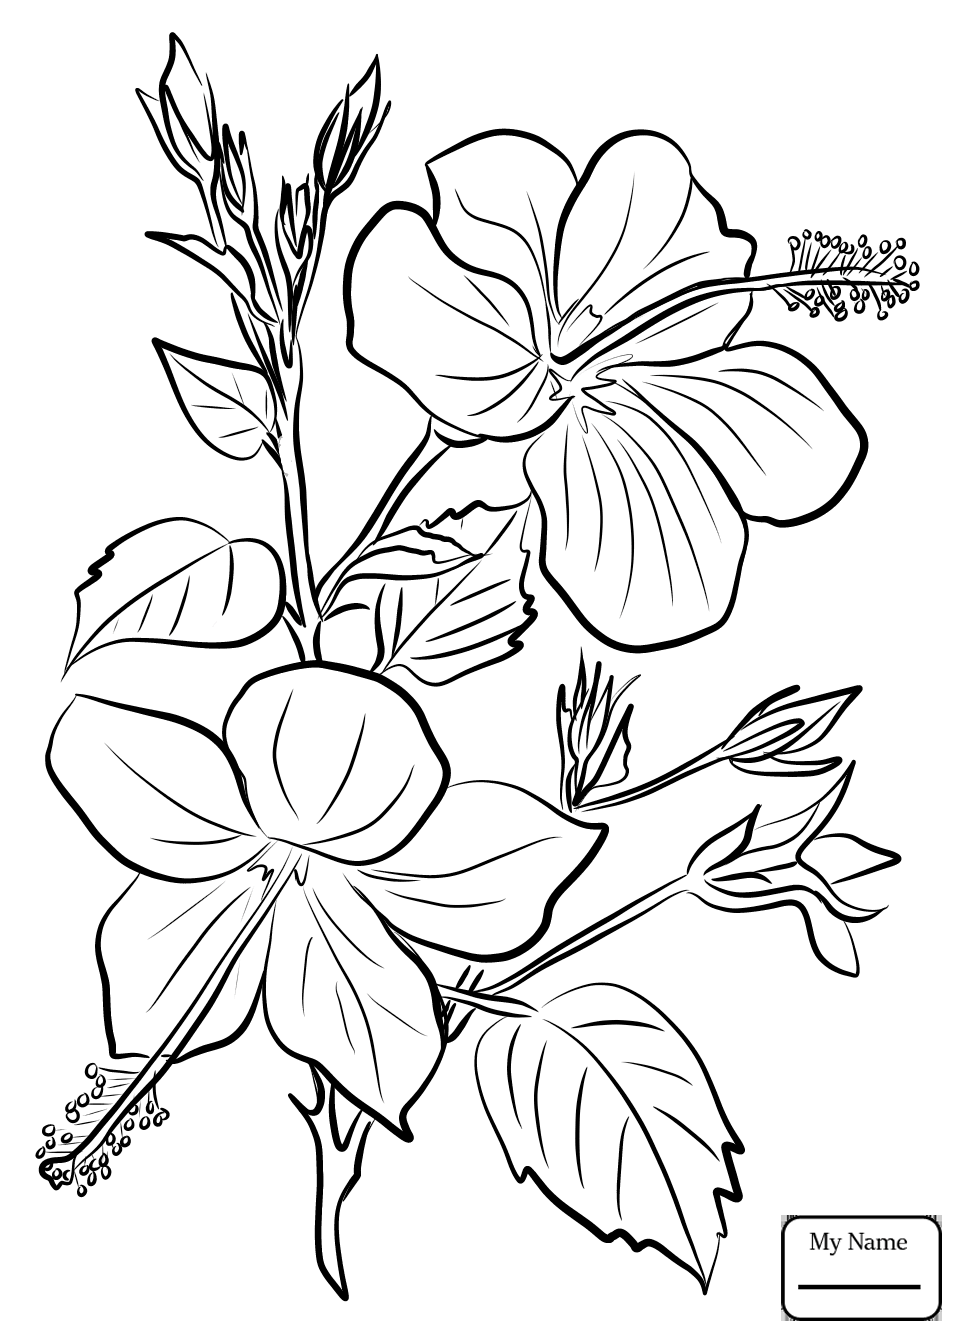 chinese flowers drawing at getdrawings com free for personal use